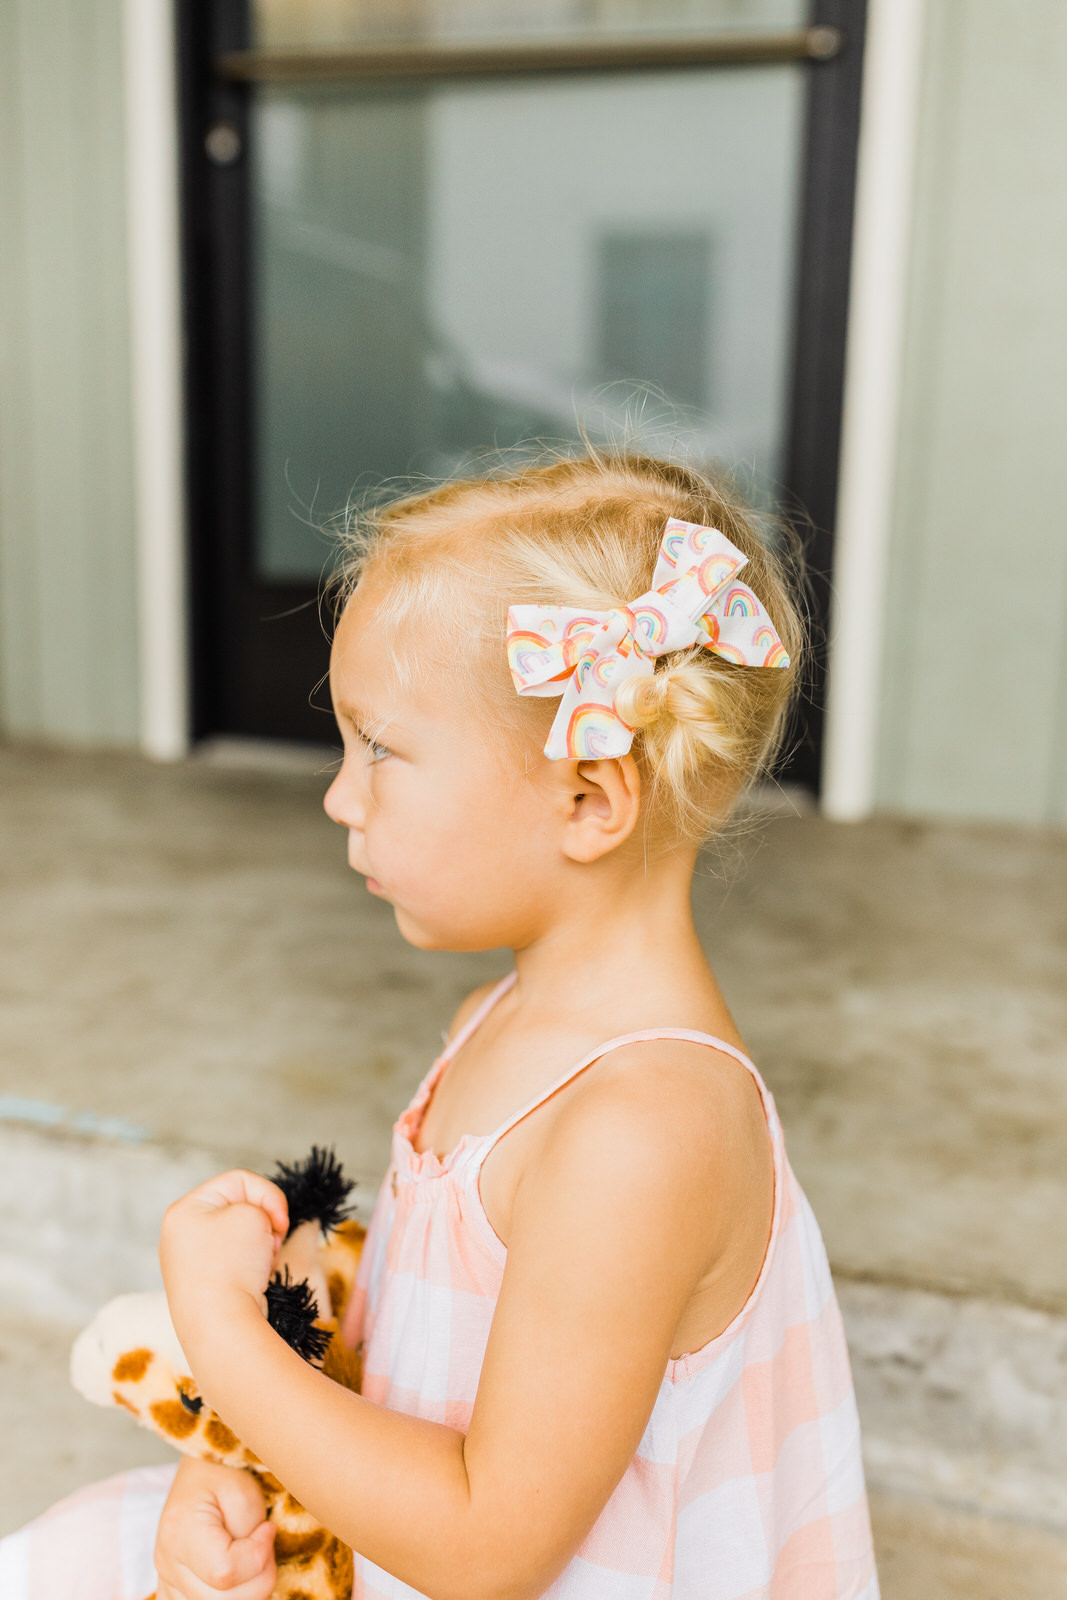 big-island-photographer-small-business-toddler-girls-bows-summer-collection-2275.jpg